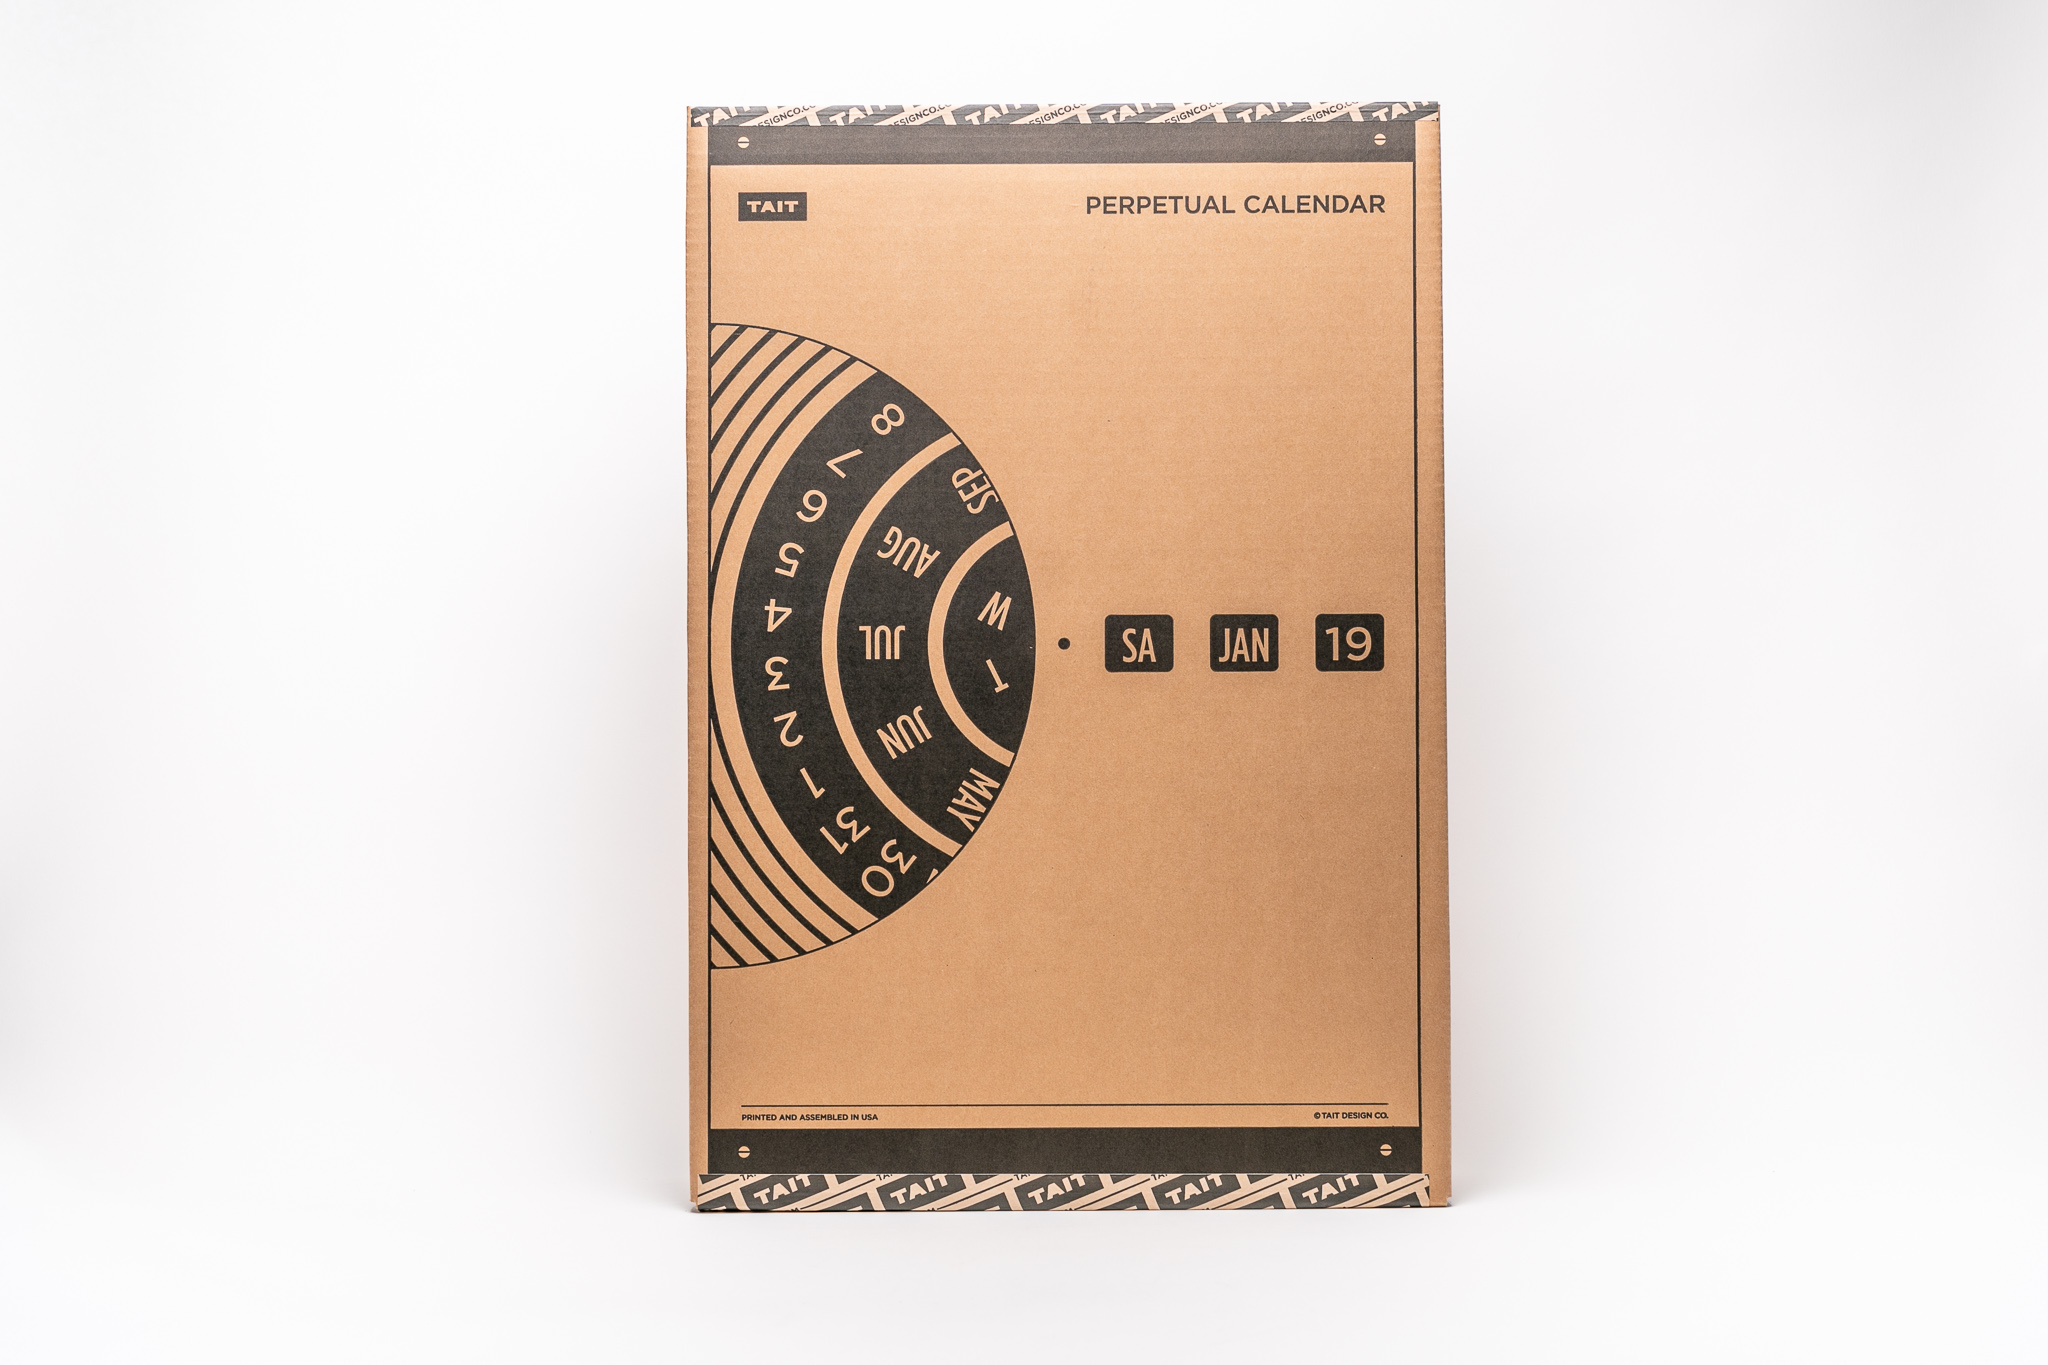 THE PACKAGING - –CUSTOM BOX–With such attention to detail across the whole product, we couldn't just put the calendar in a plain box. Instead, we created a custom matching kraft box, making it all the more exciting to give as a gift or receive for yourself.